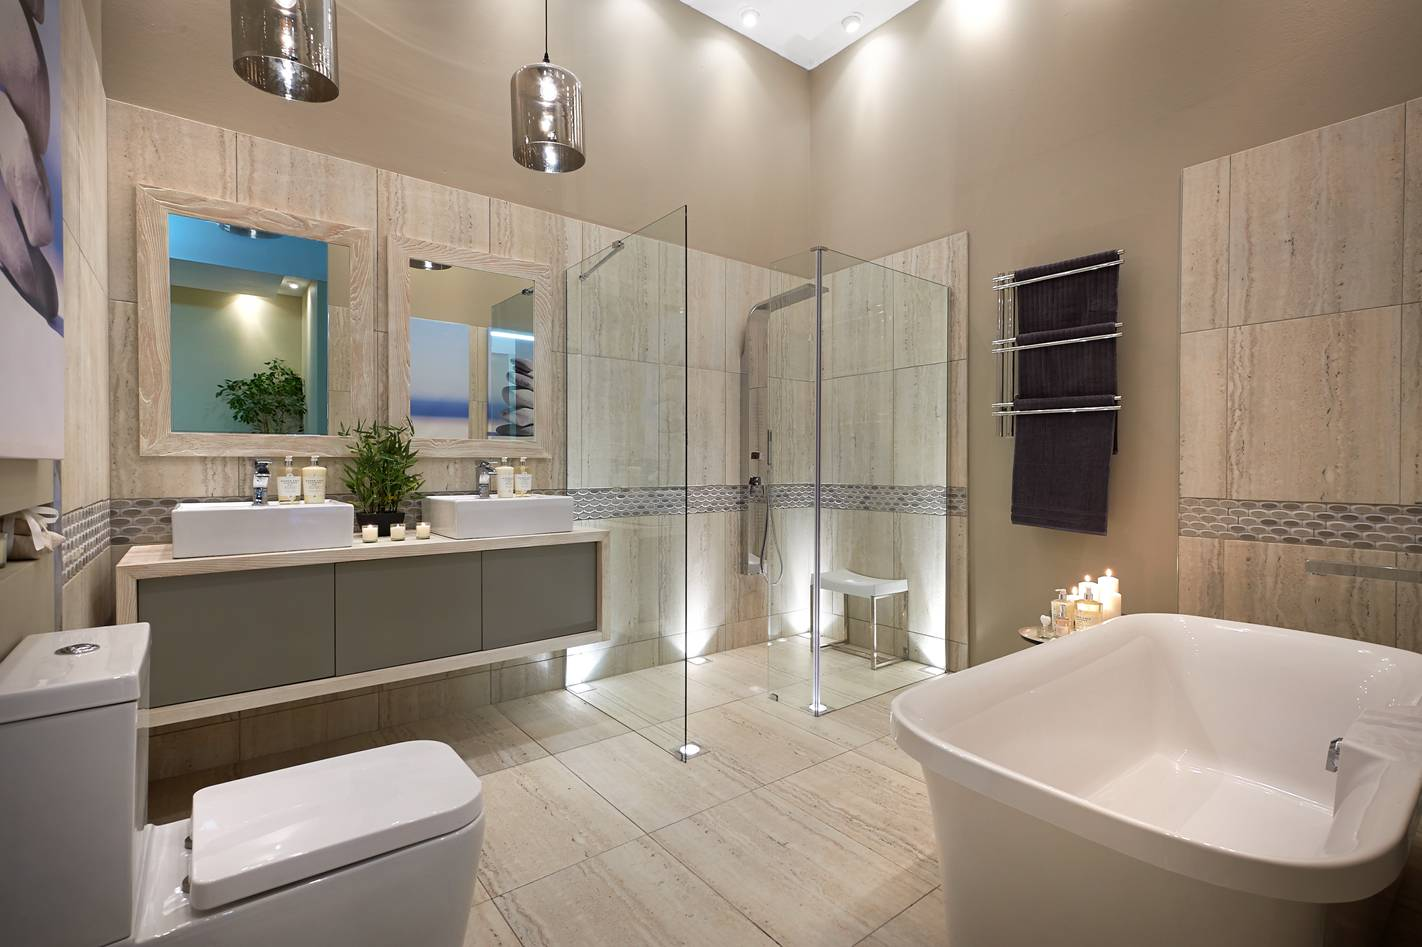 Top design tips for family bathrooms Home bathroom designs